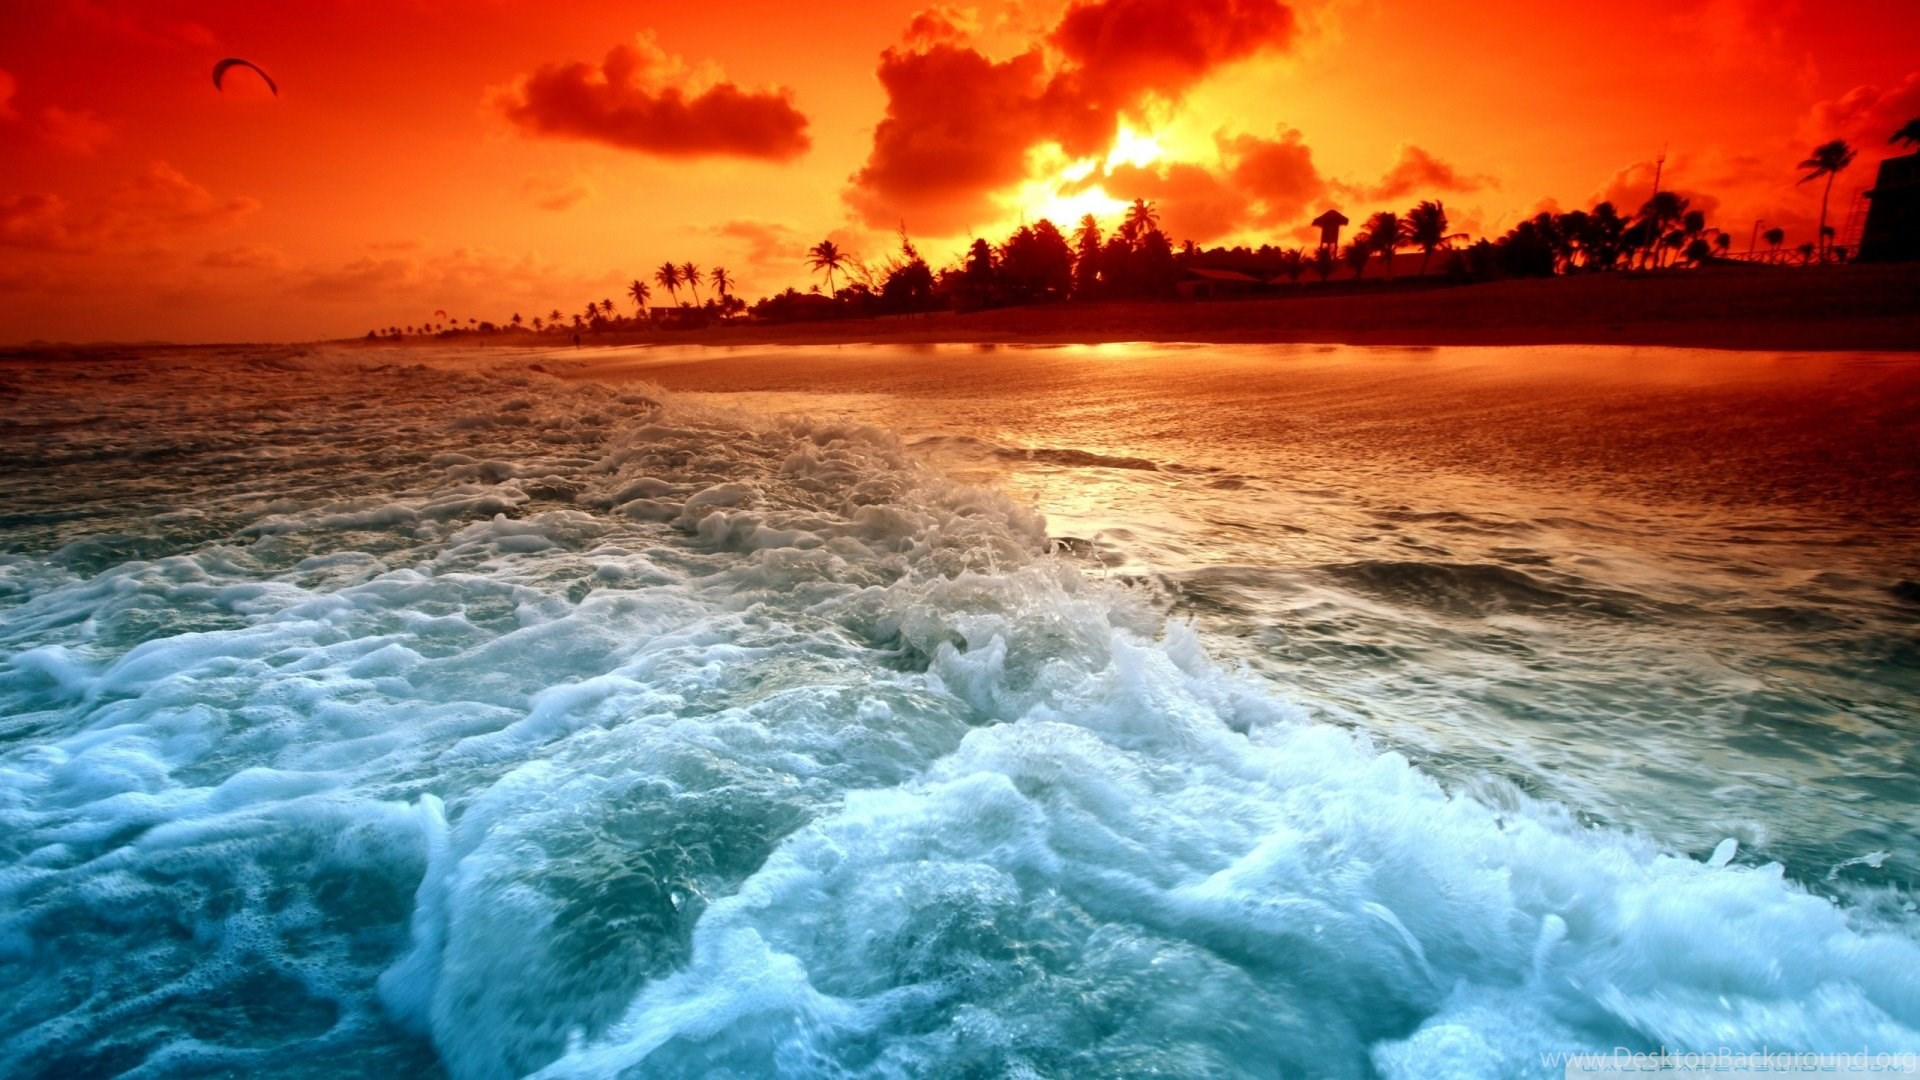 Tropical Beach Sunset Hd Desktop Wallpapers High Definition Desktop Background